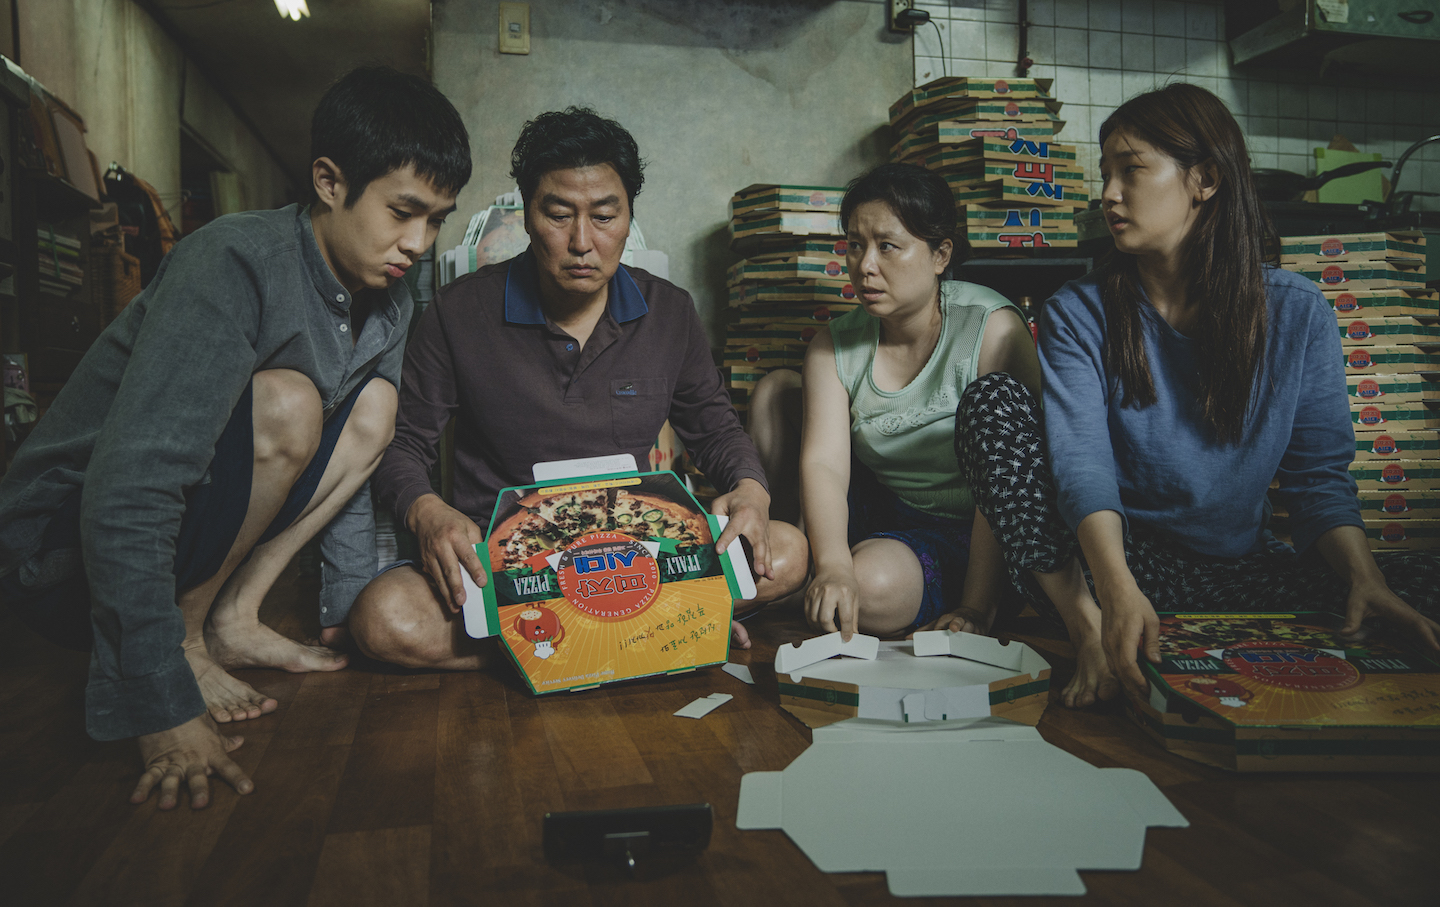 The Kim Family (Woo-sik Choi, Kang-ho Song, Hye-jin Jang, So-dam Park) in Parasite. Courtesy of NEON + CJ Entertainment